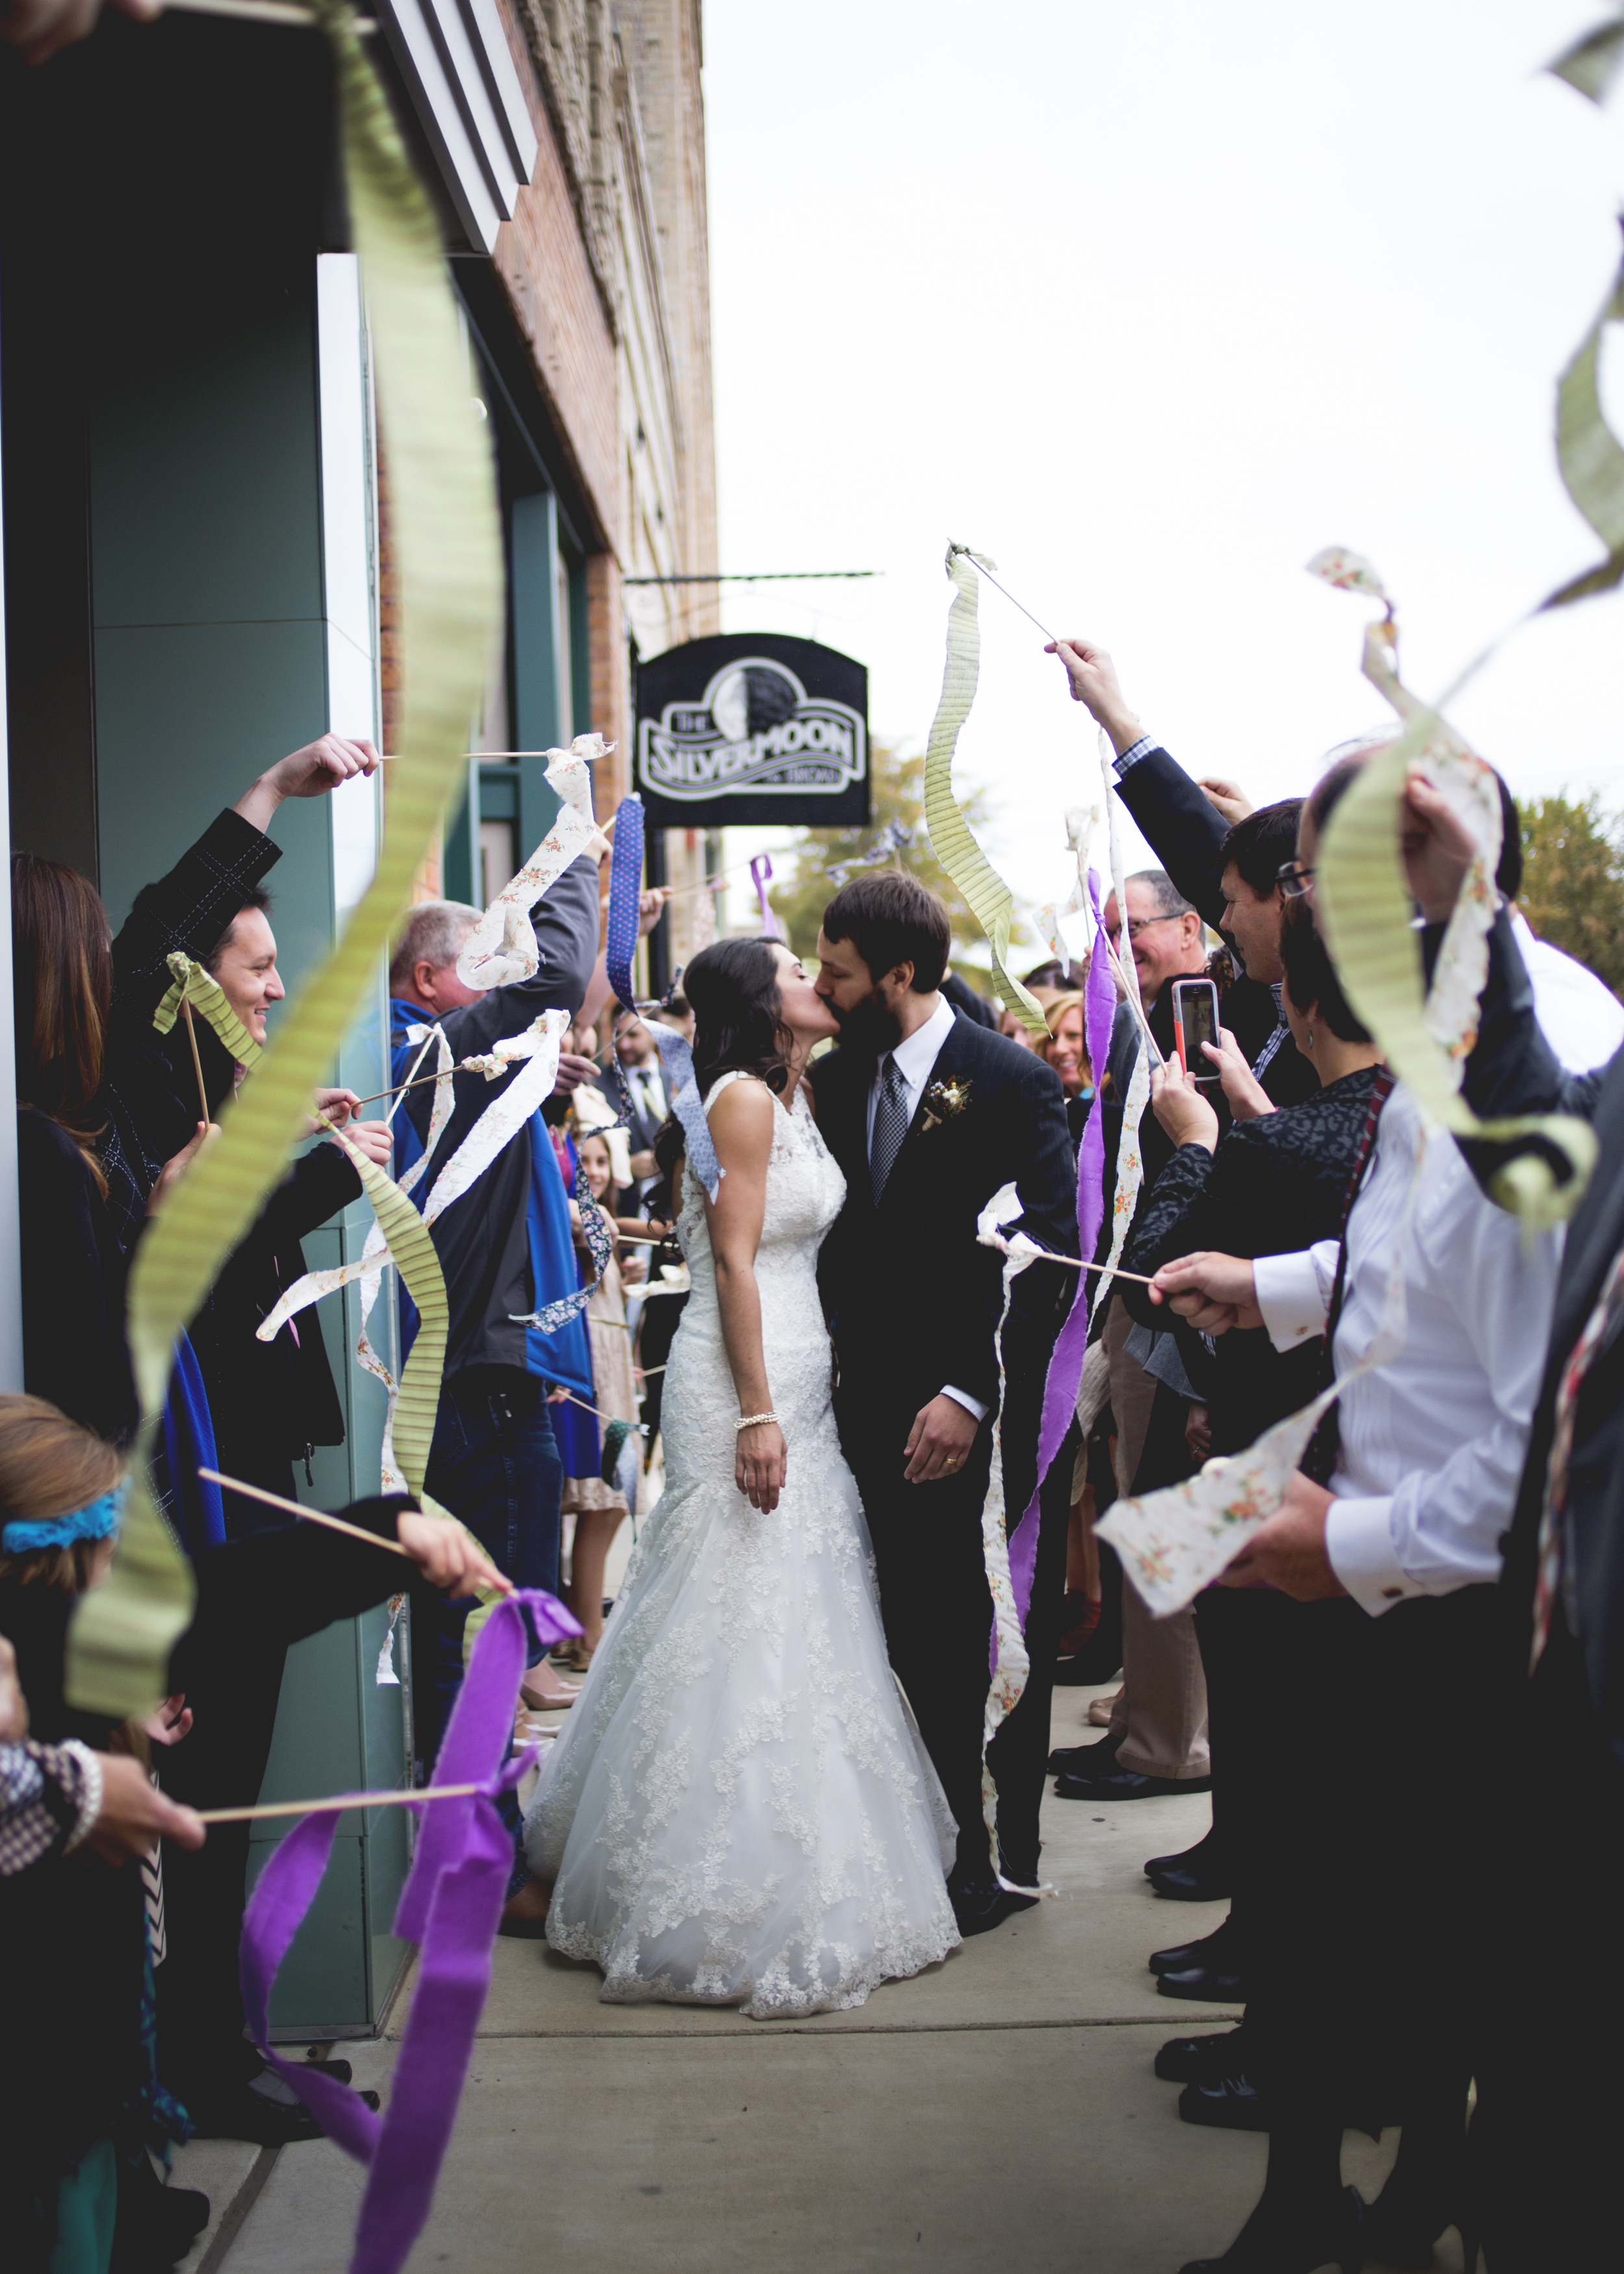 Ribbons- fantastic idea for a daytime exit!